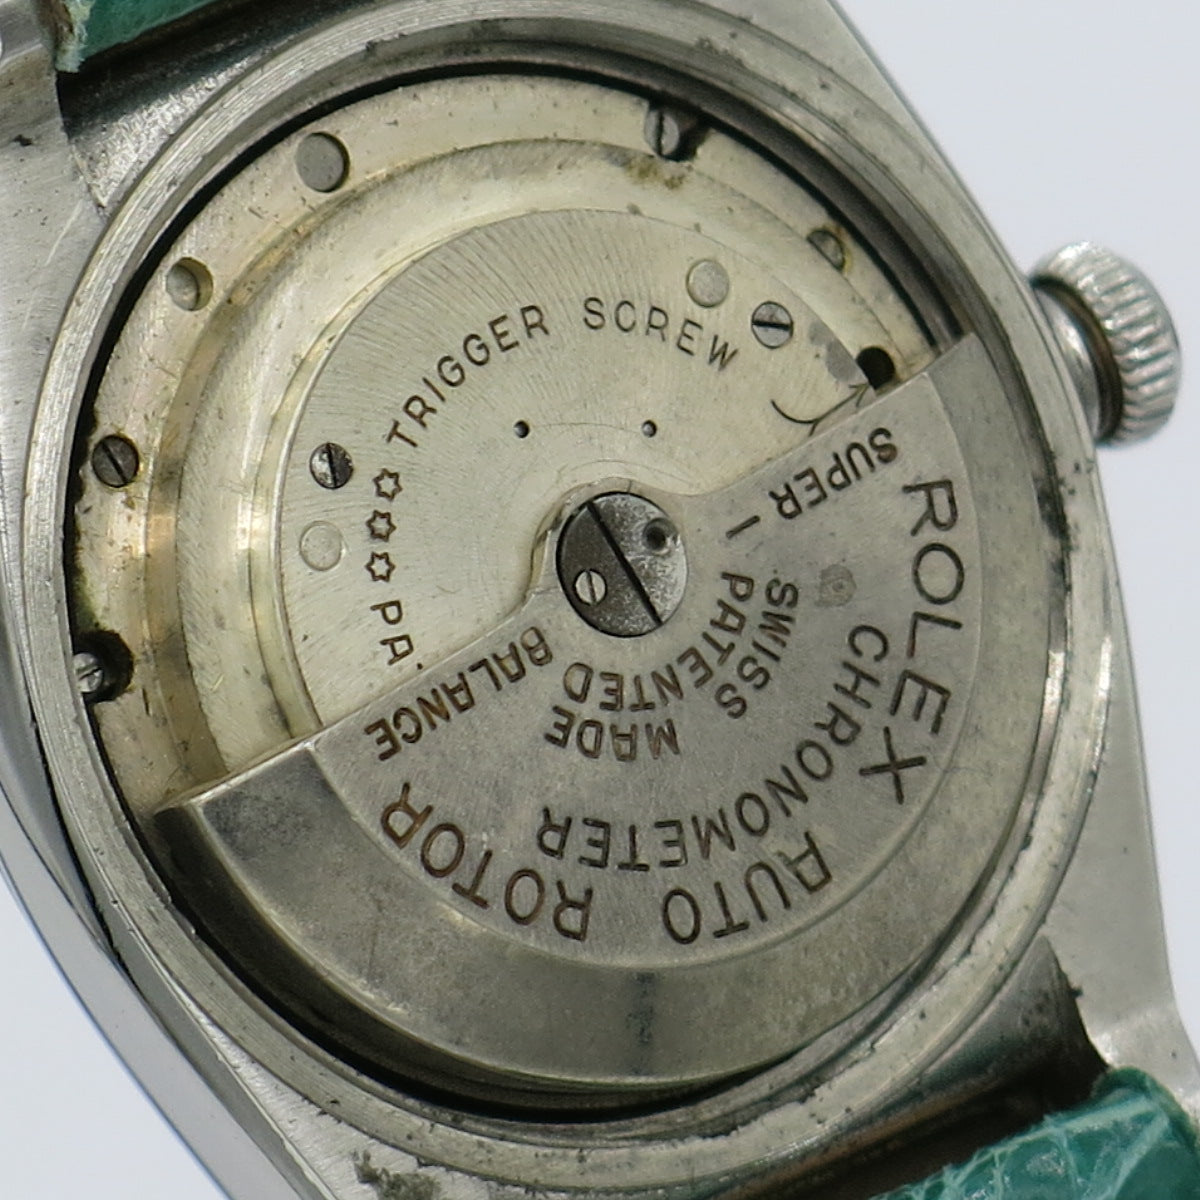 Rolex Oyster Perpetual bubbleback ref. 3065